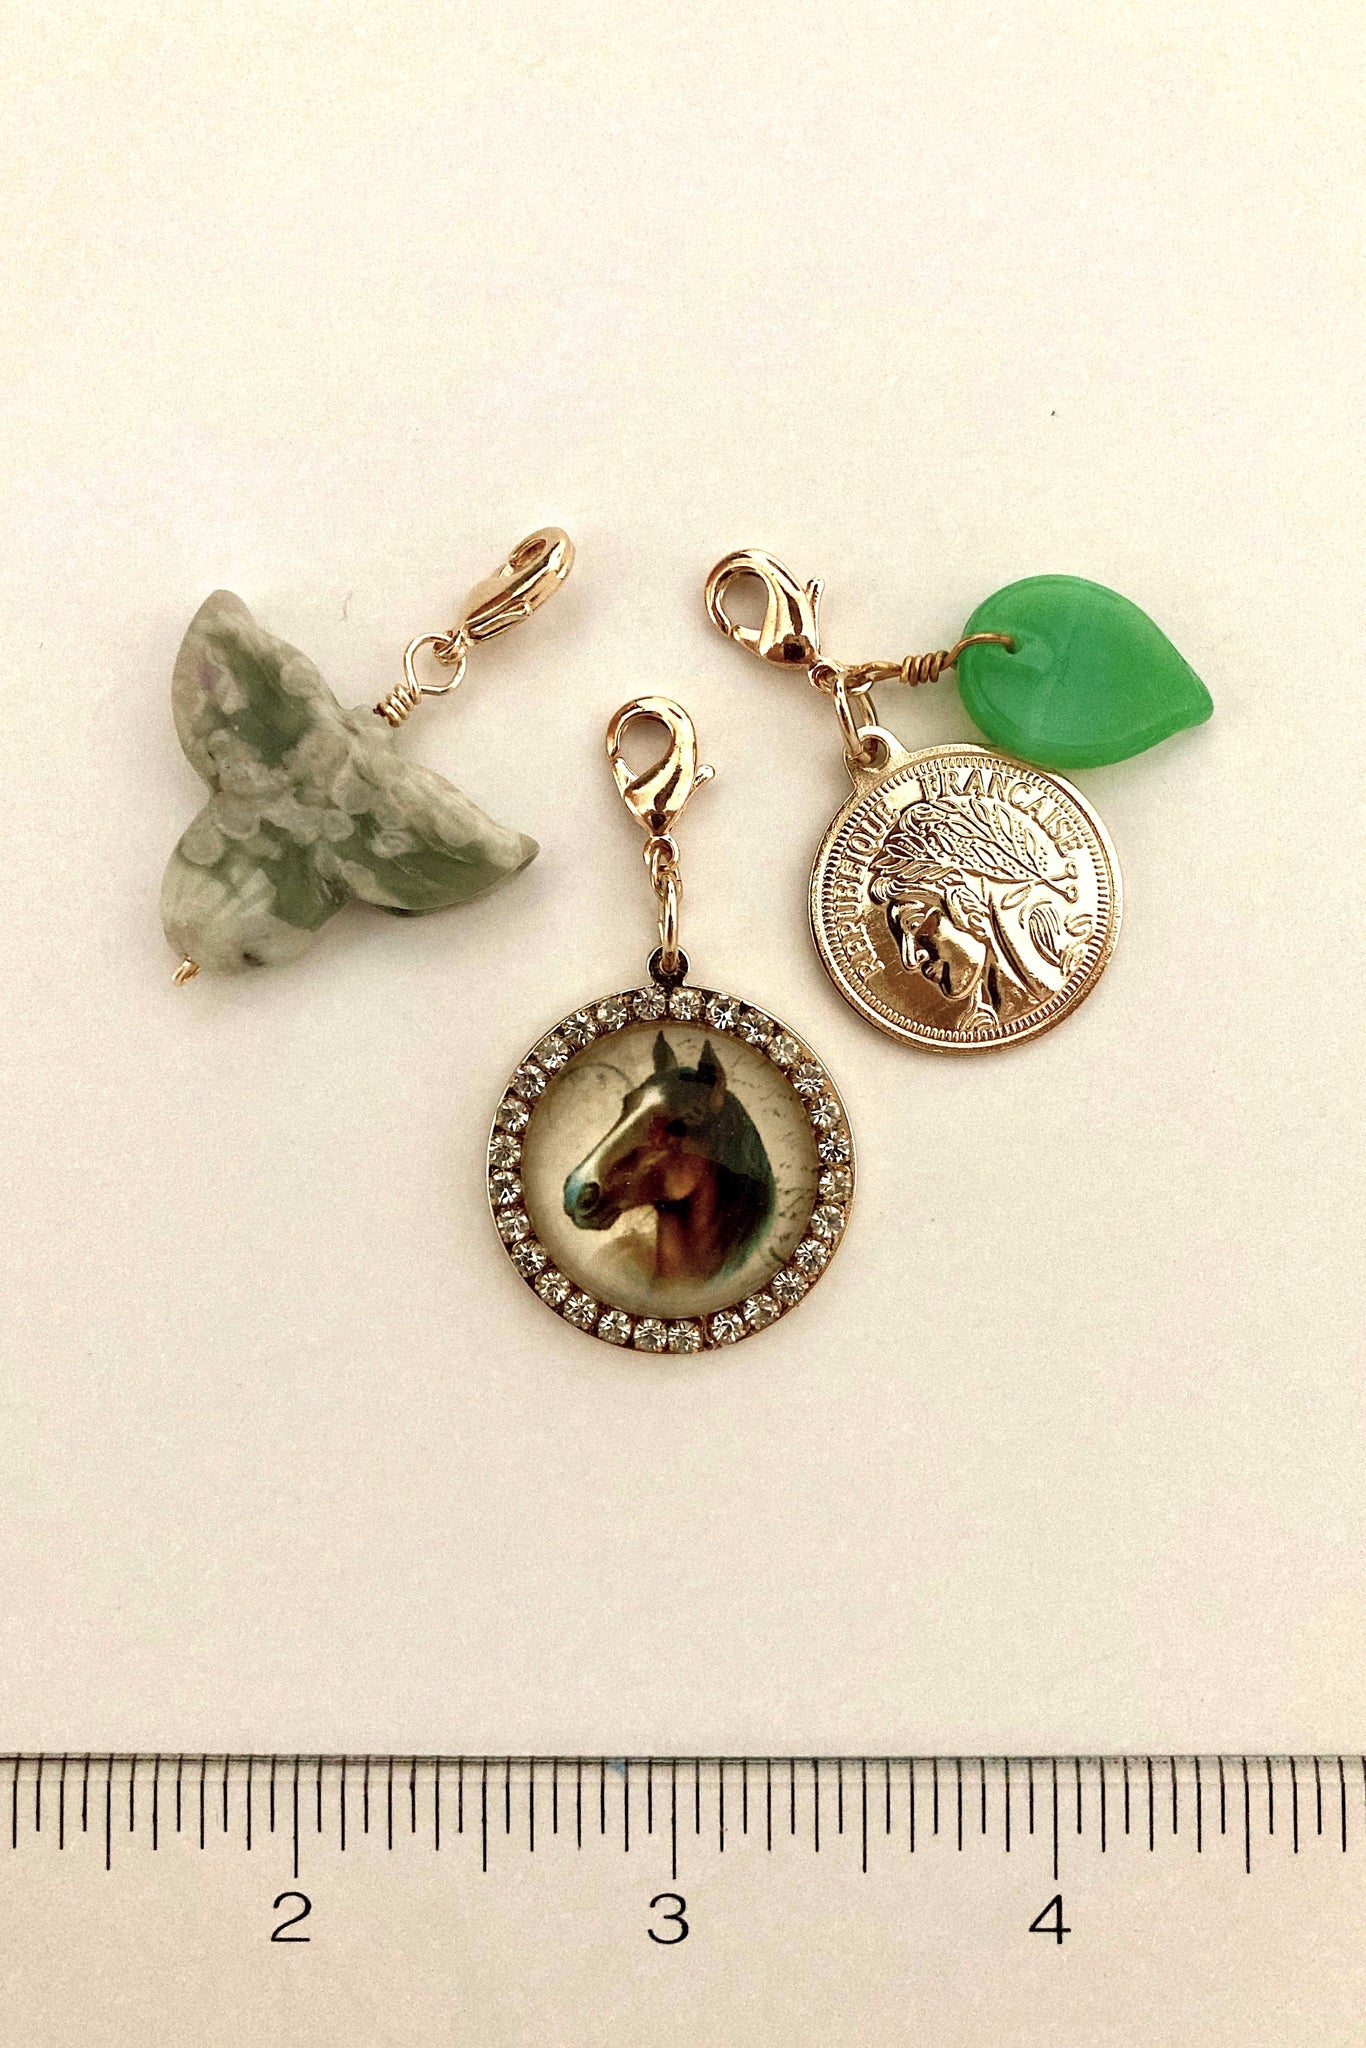 horse charm, coin charm and semi precious leaf, charms for arabella and ella necklace in our Pop Renaissance Collection.